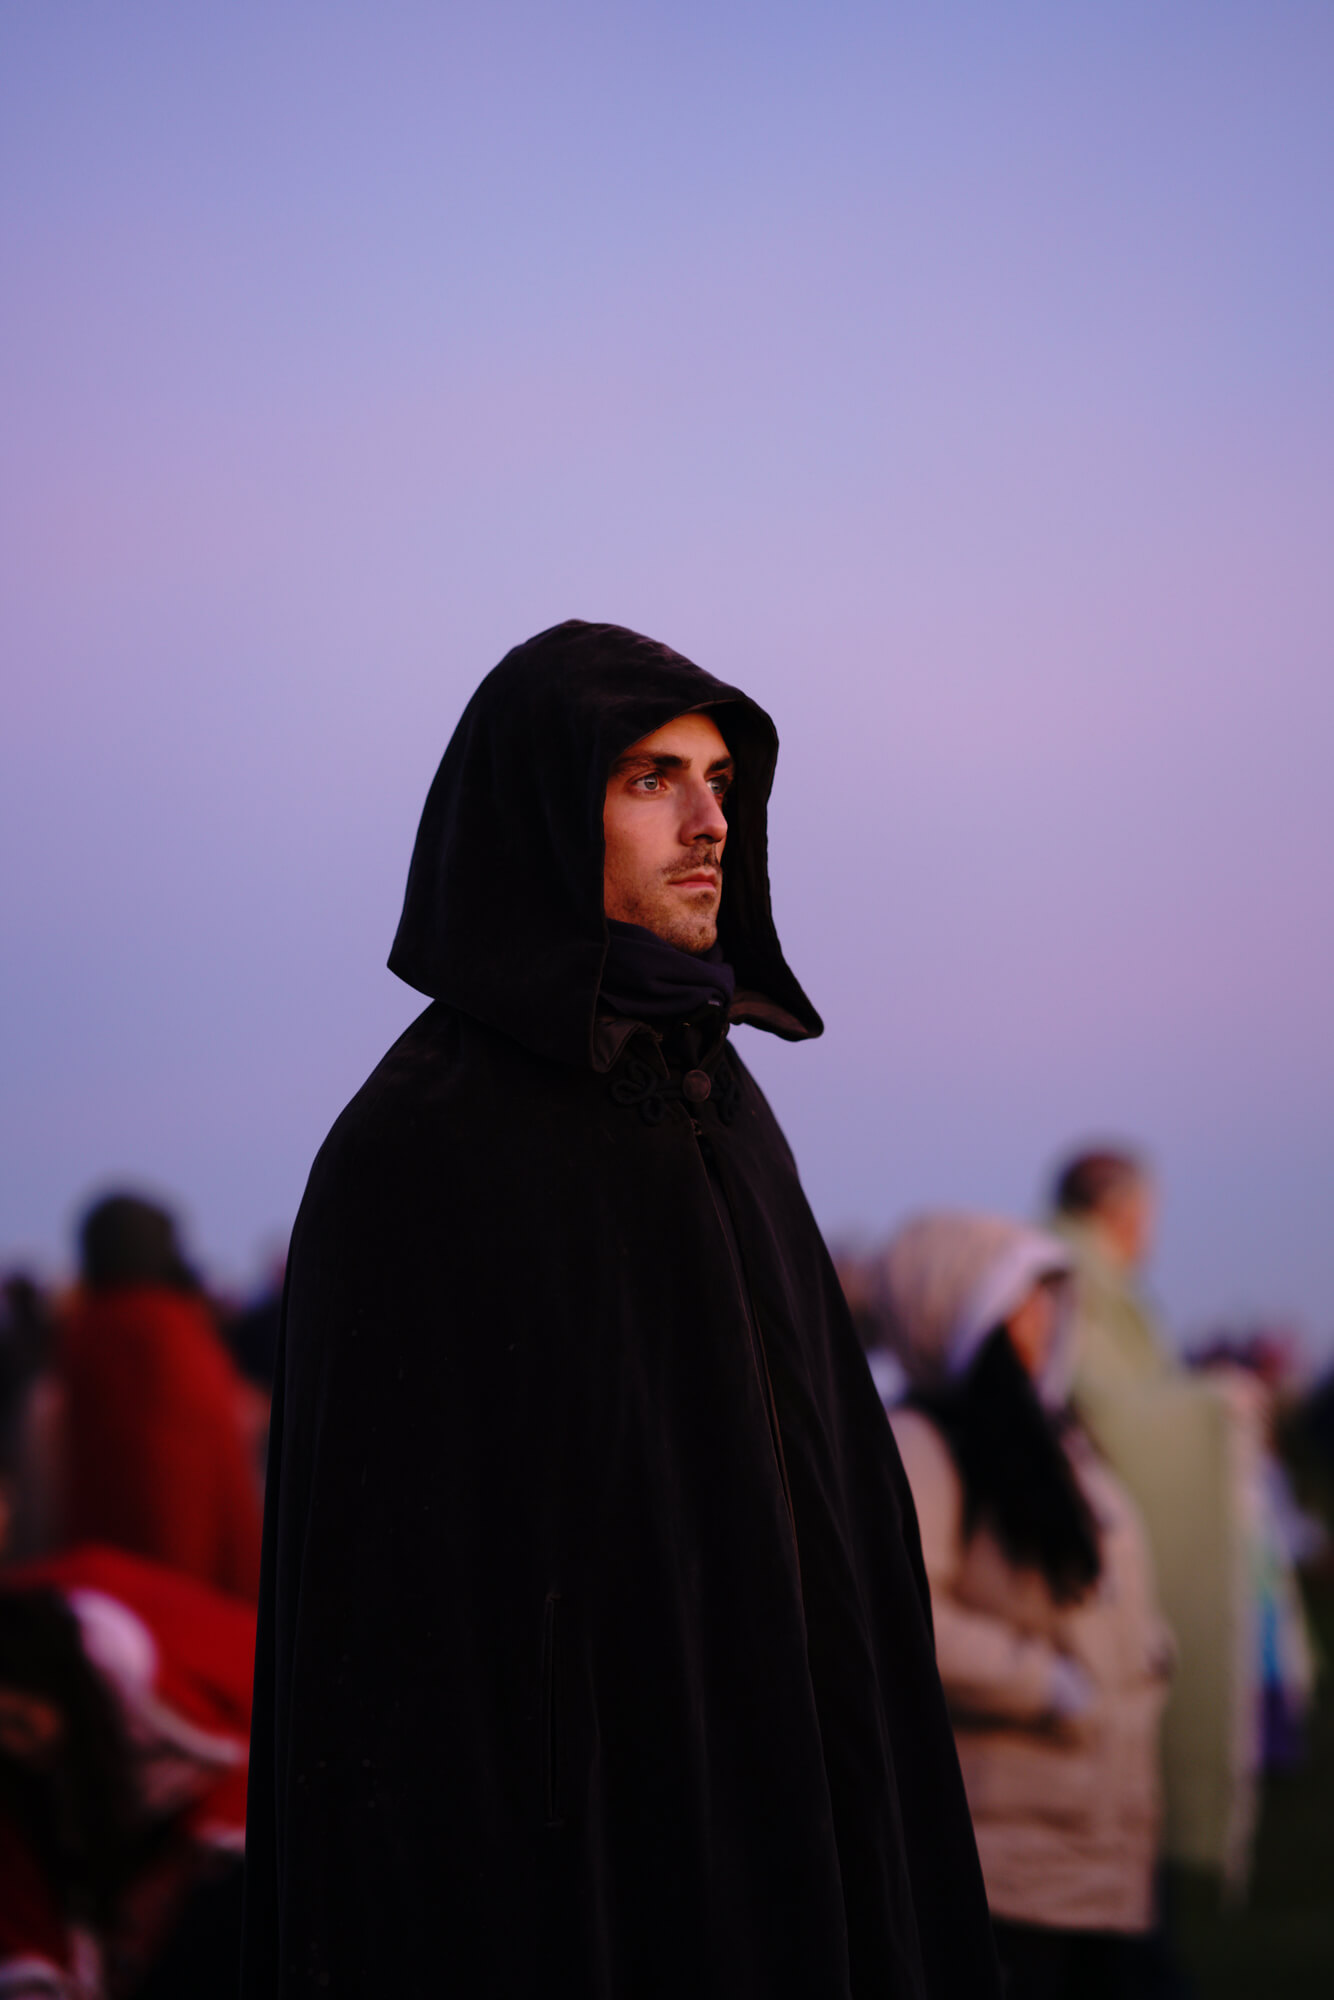 ana paganini stonehenge Summer and Winter Solstices the south west collective of photography man wears robes at sunset